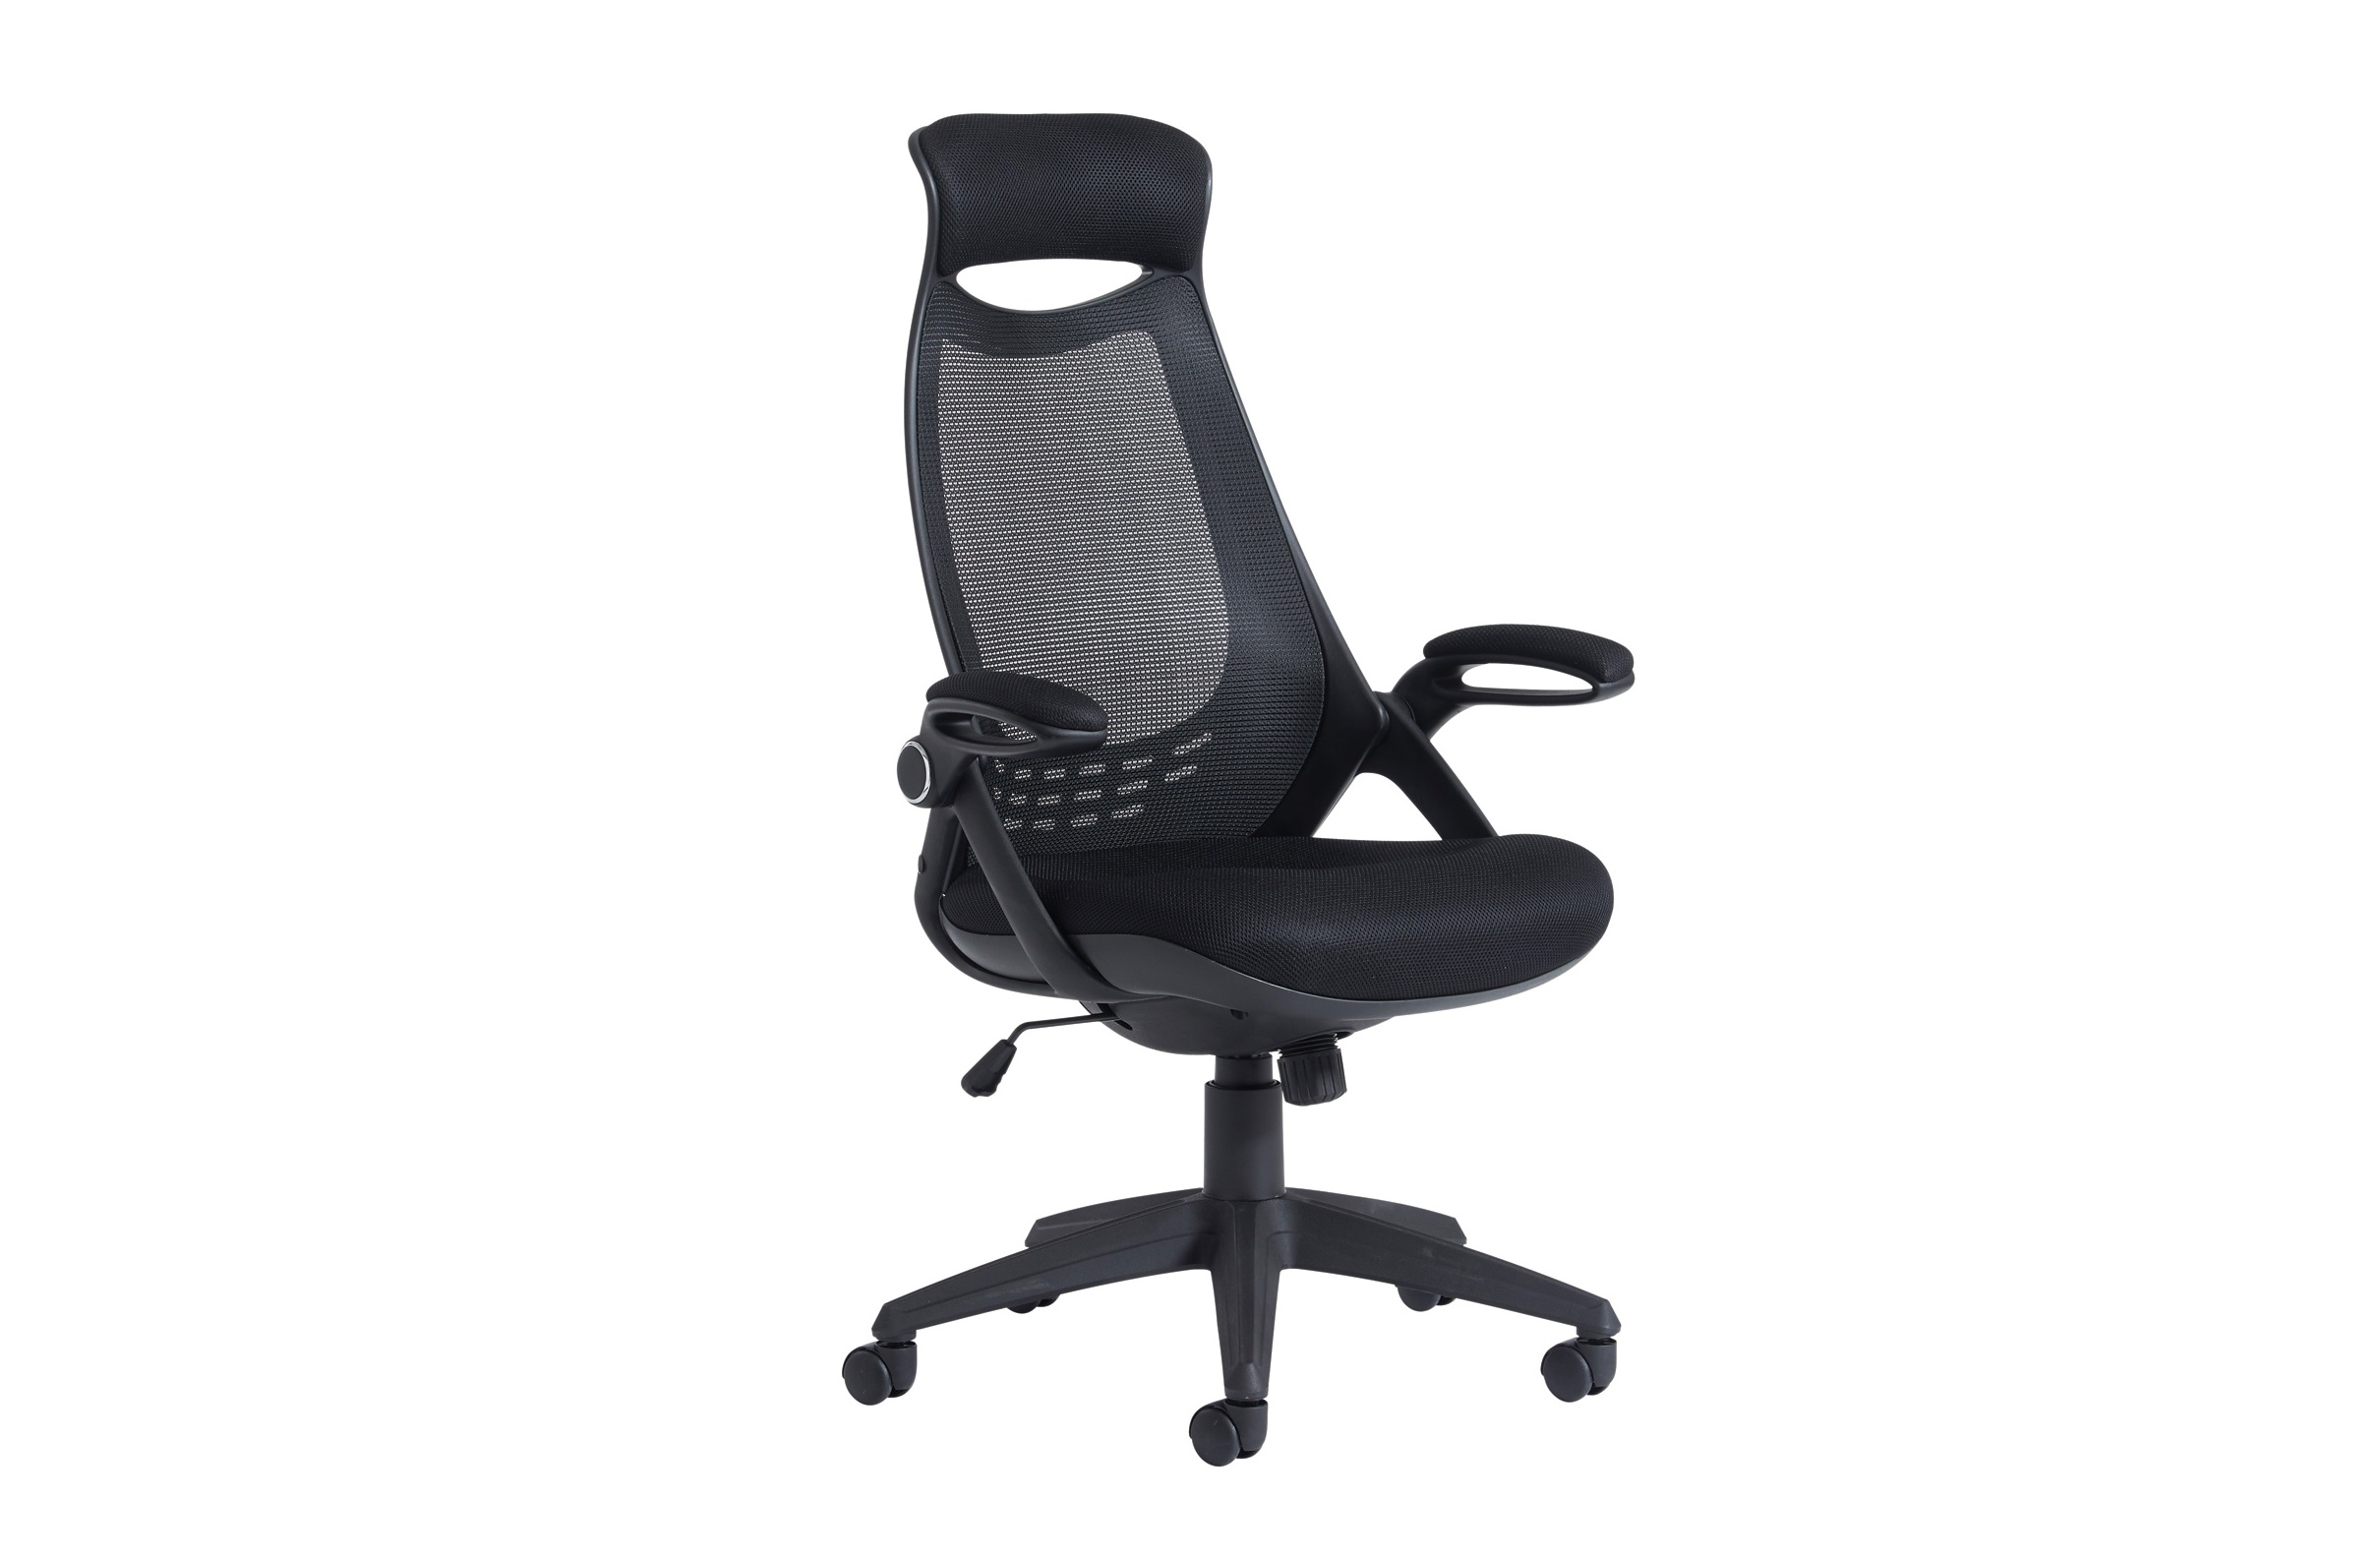 MT237 Mesh Task Chairs Clearance And Offers Waterfront